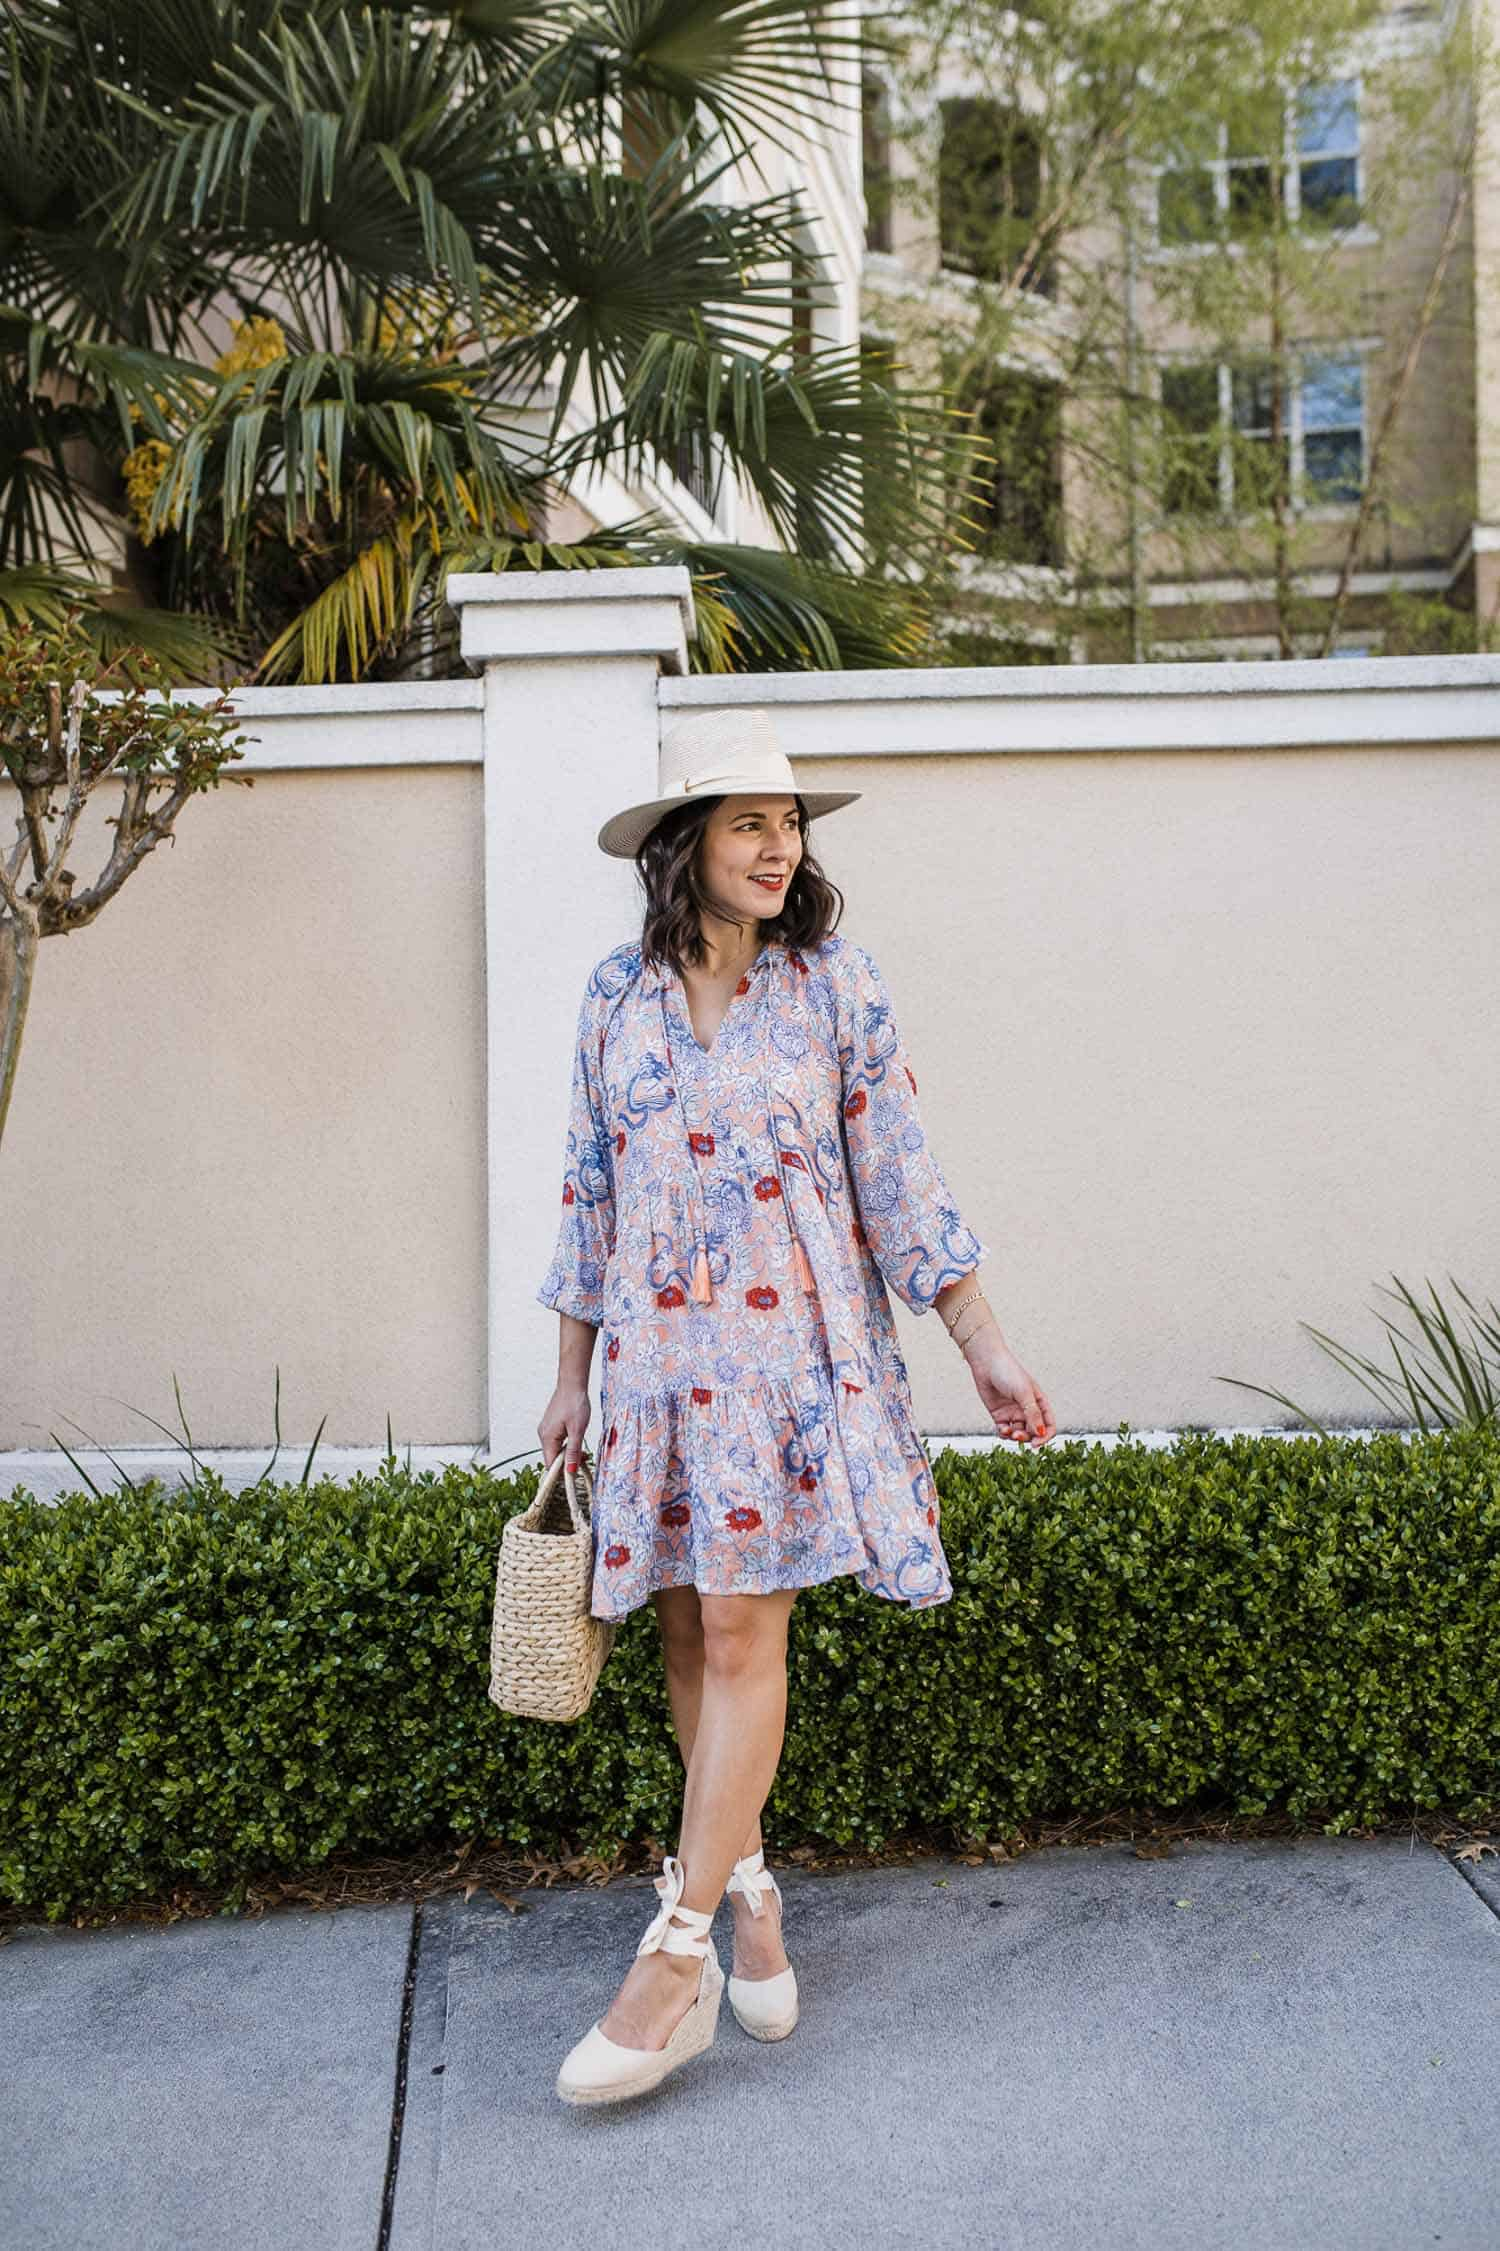 Jessica Camerata wears a summer dress with espadrilles